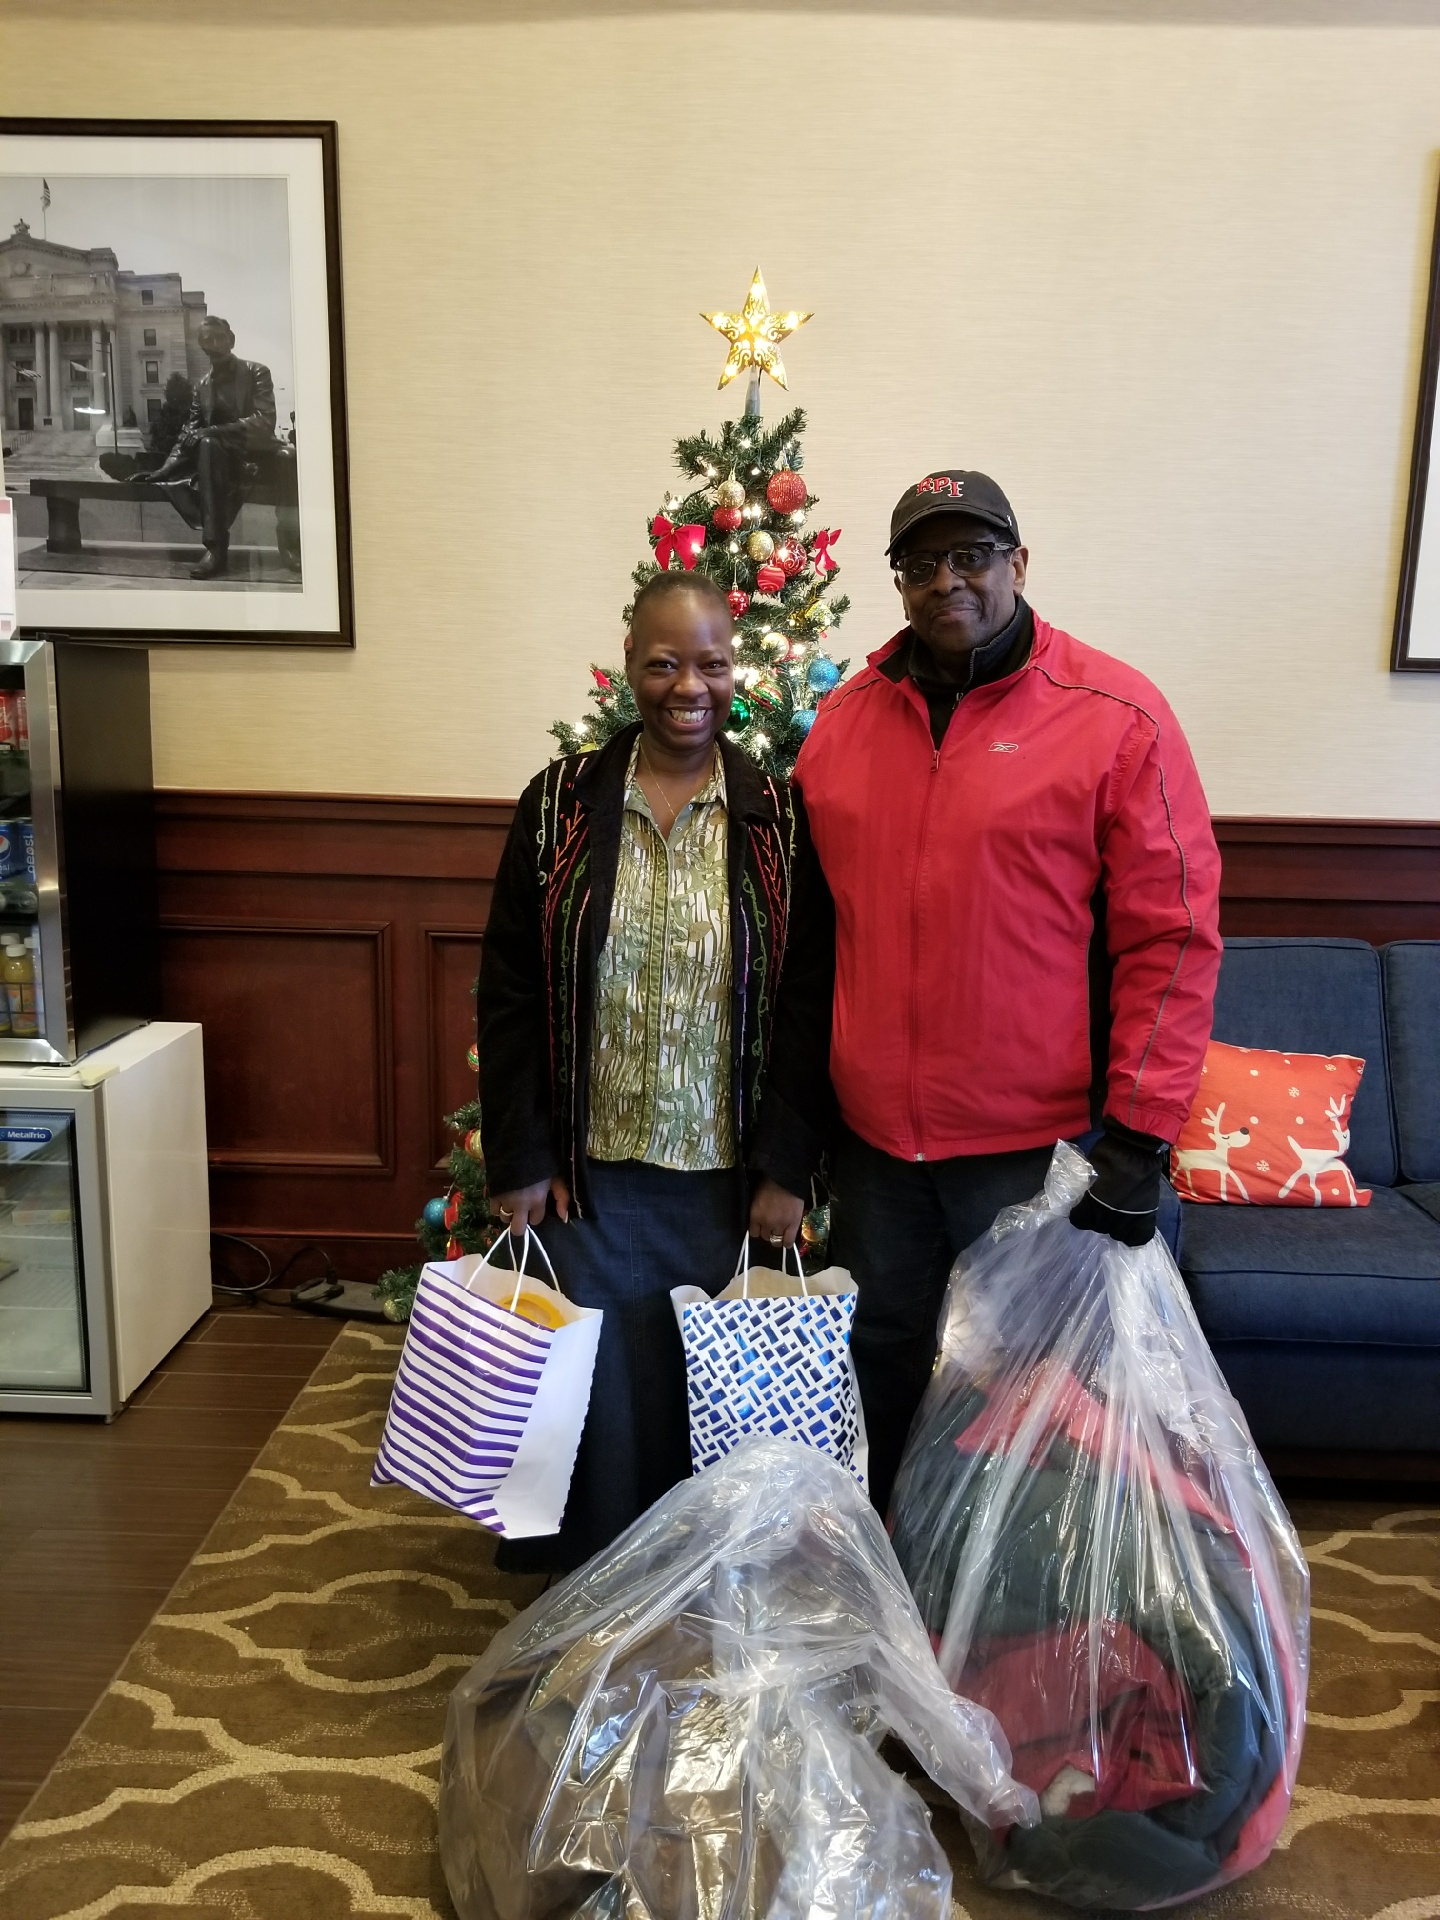 FARC delivered two bags of winter coats to a family at the Comfort Suite Inn in Newark. The family was displaced by a fire two days before Christmas. The gift bags in this picture was donated by Friends of FARC, Ellen and Wendell Maddrey.